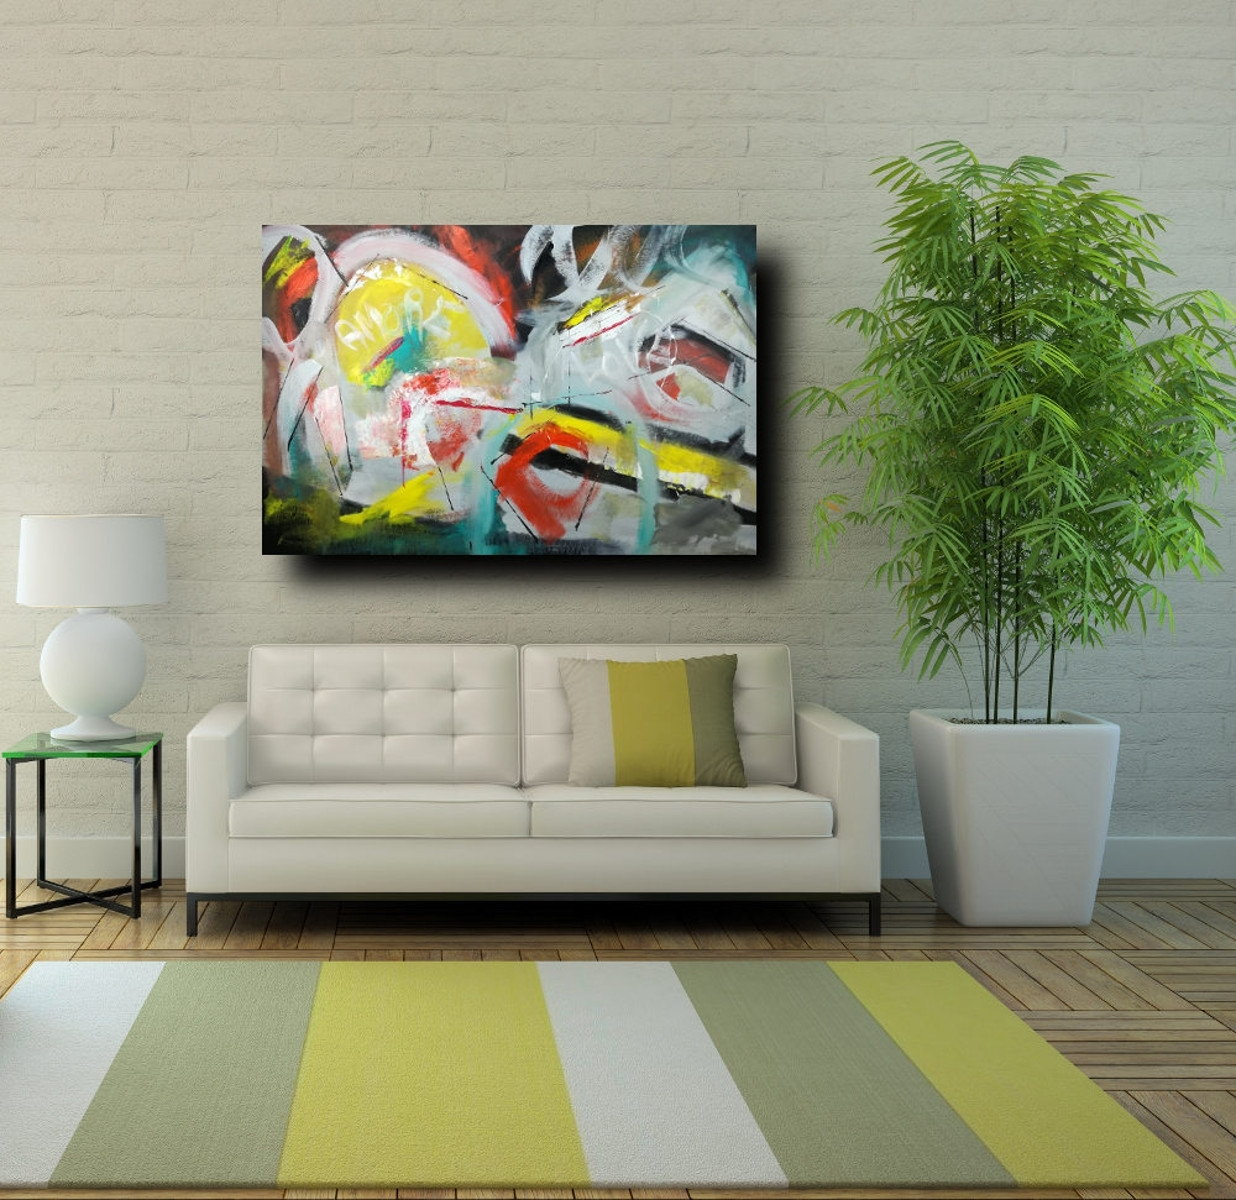 Large Wall Art Modern On Canvas 120X80 intended for Most Current Modern Large Canvas Wall Art